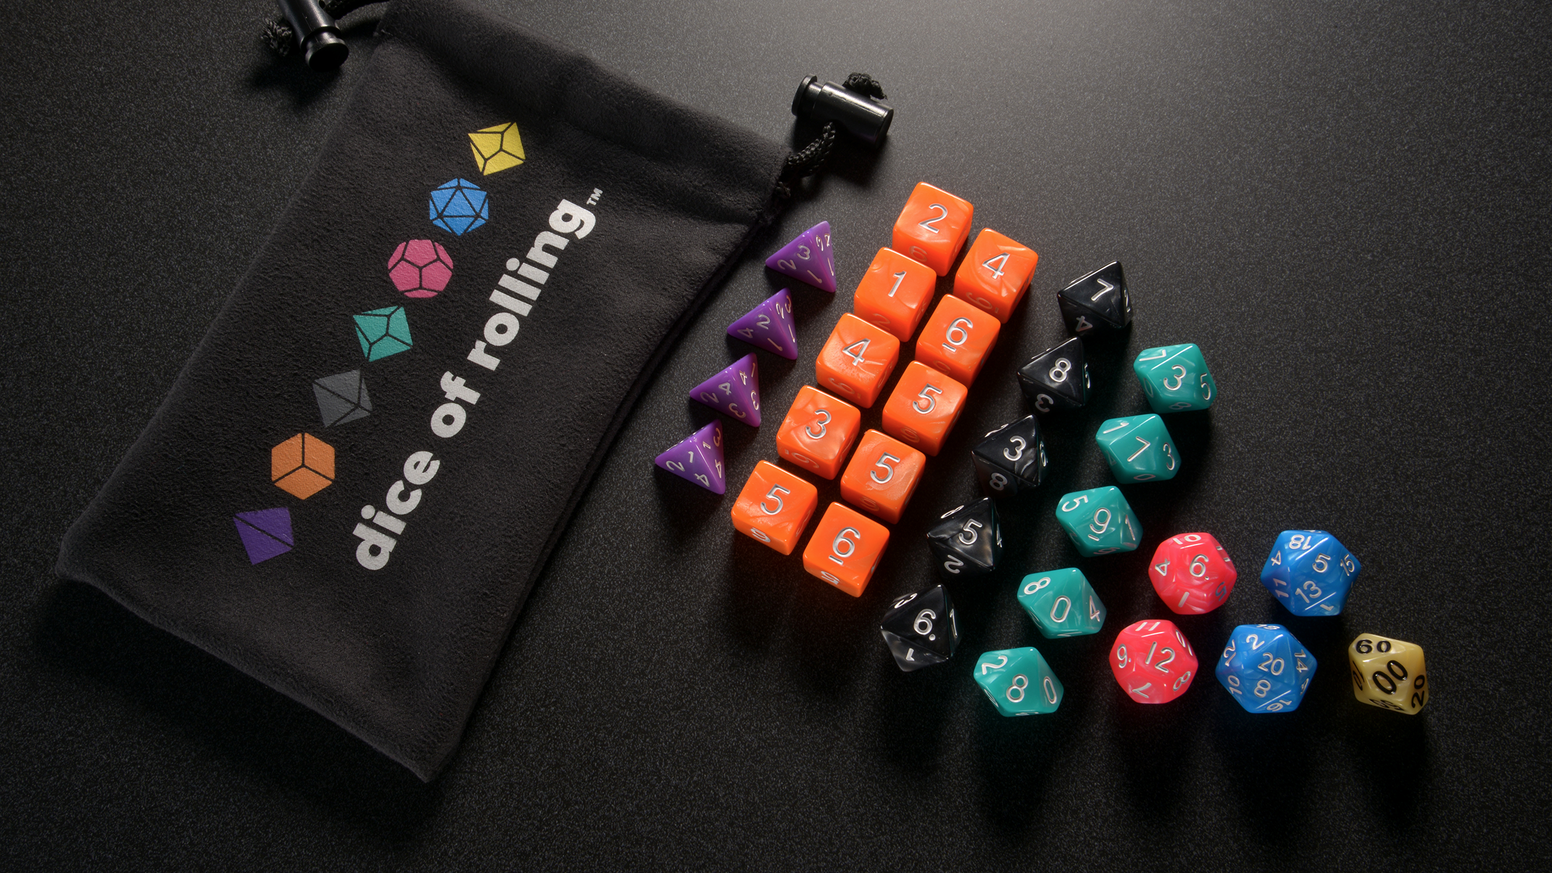 A set of color-coded dice, system optimized for the 5th edition of the world's greatest roleplaying game.